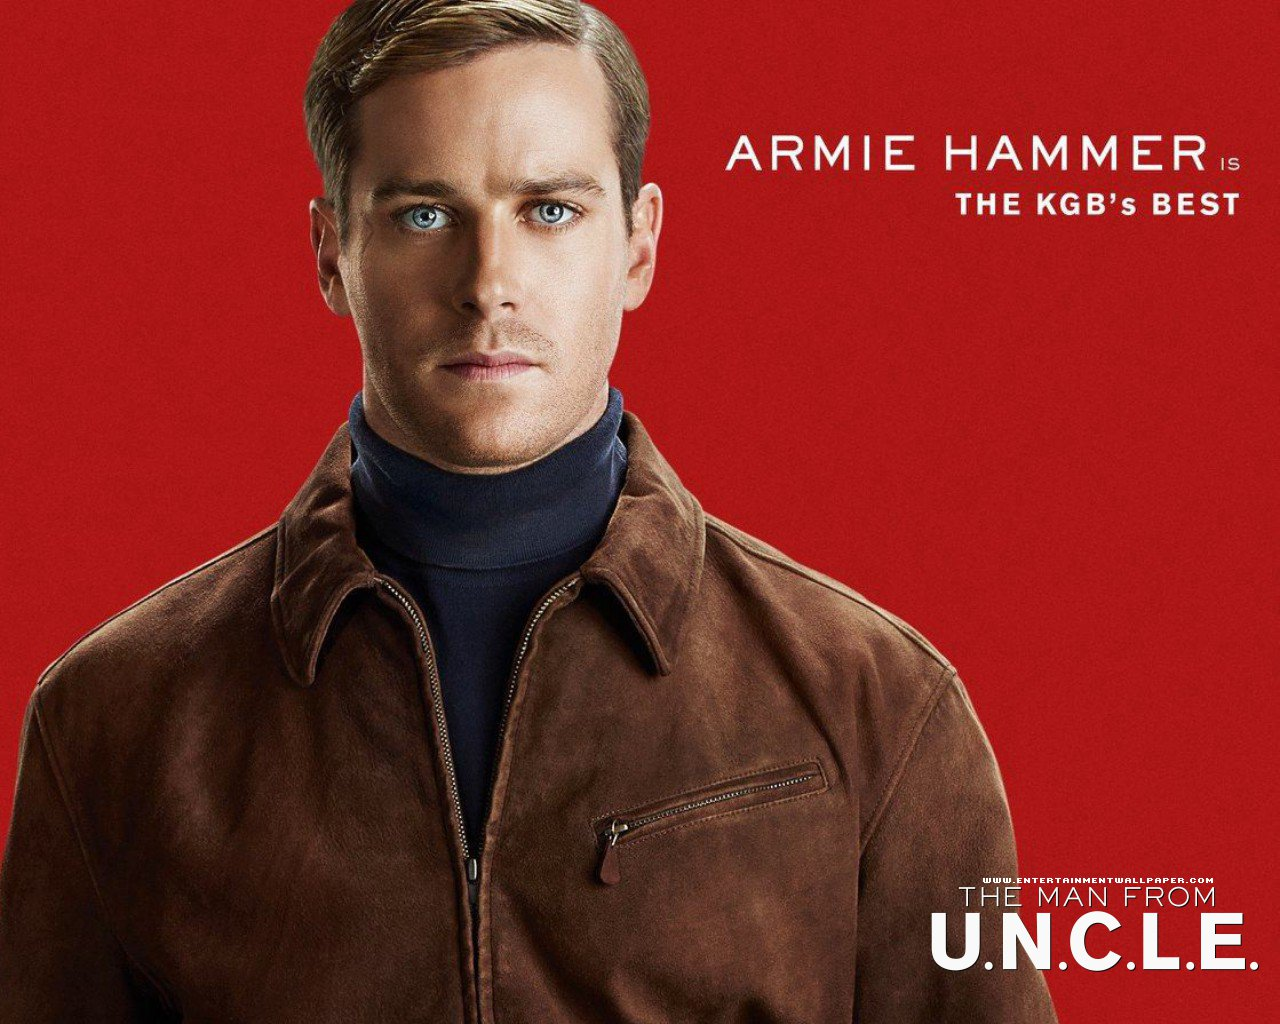 The Man from UNCLE Wallpaper   10046290 1280x1024 1280x1024